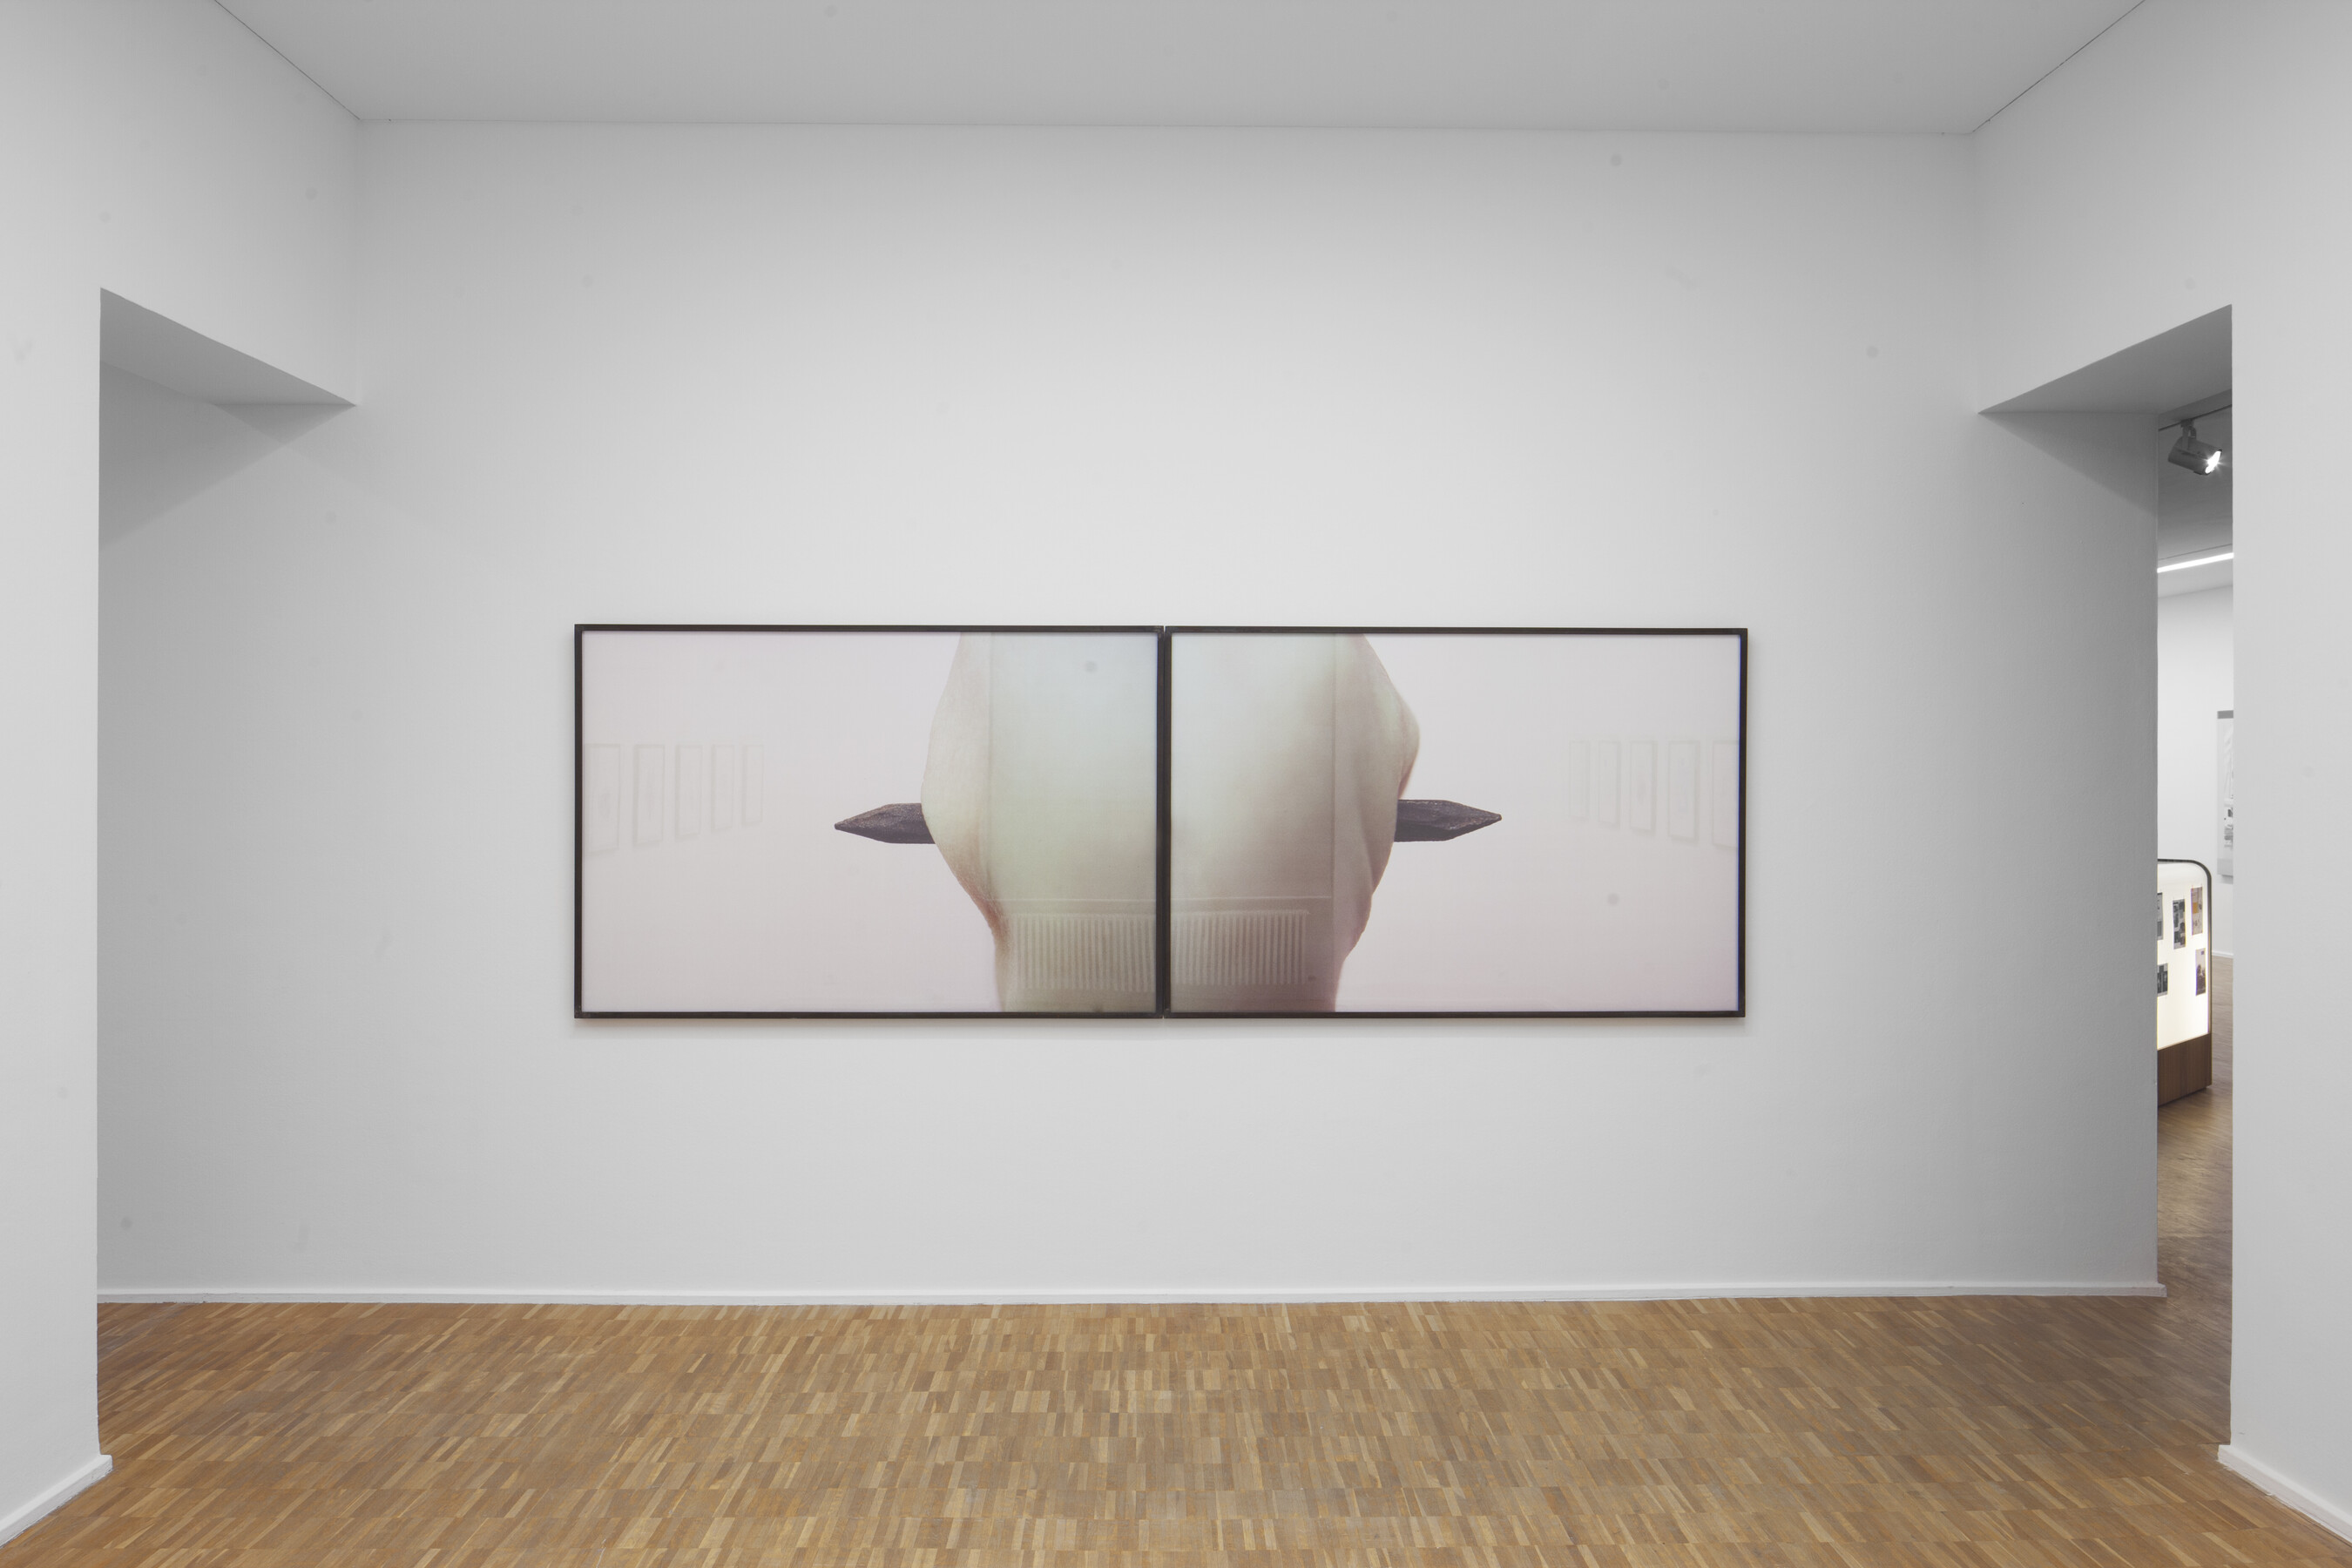 Thomas Florschuetz, Untitled, 1989/1991. Photo: Wenzel Staehlin, The Present Order - Zweiter Teil